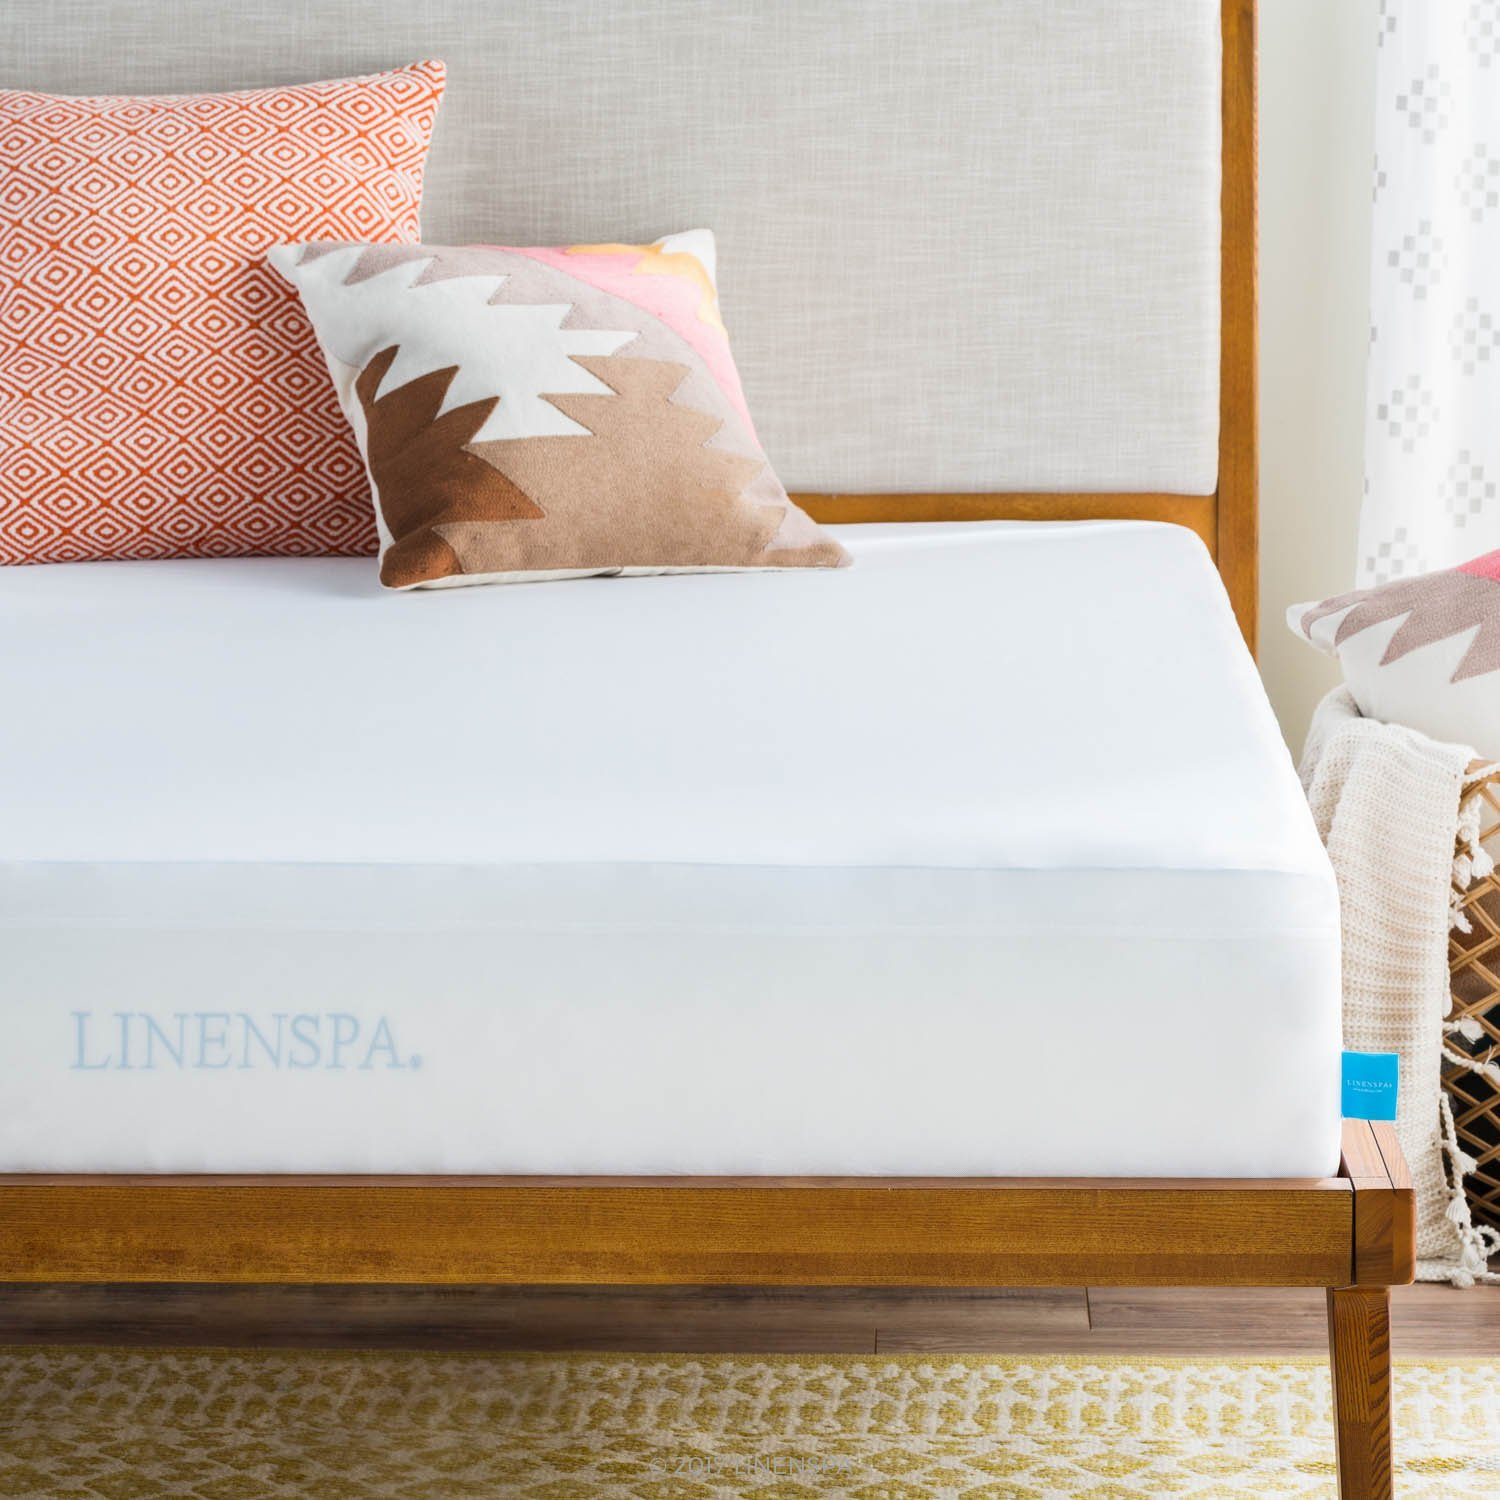 Linenspa Premium Waterproof Mattress Protector Review